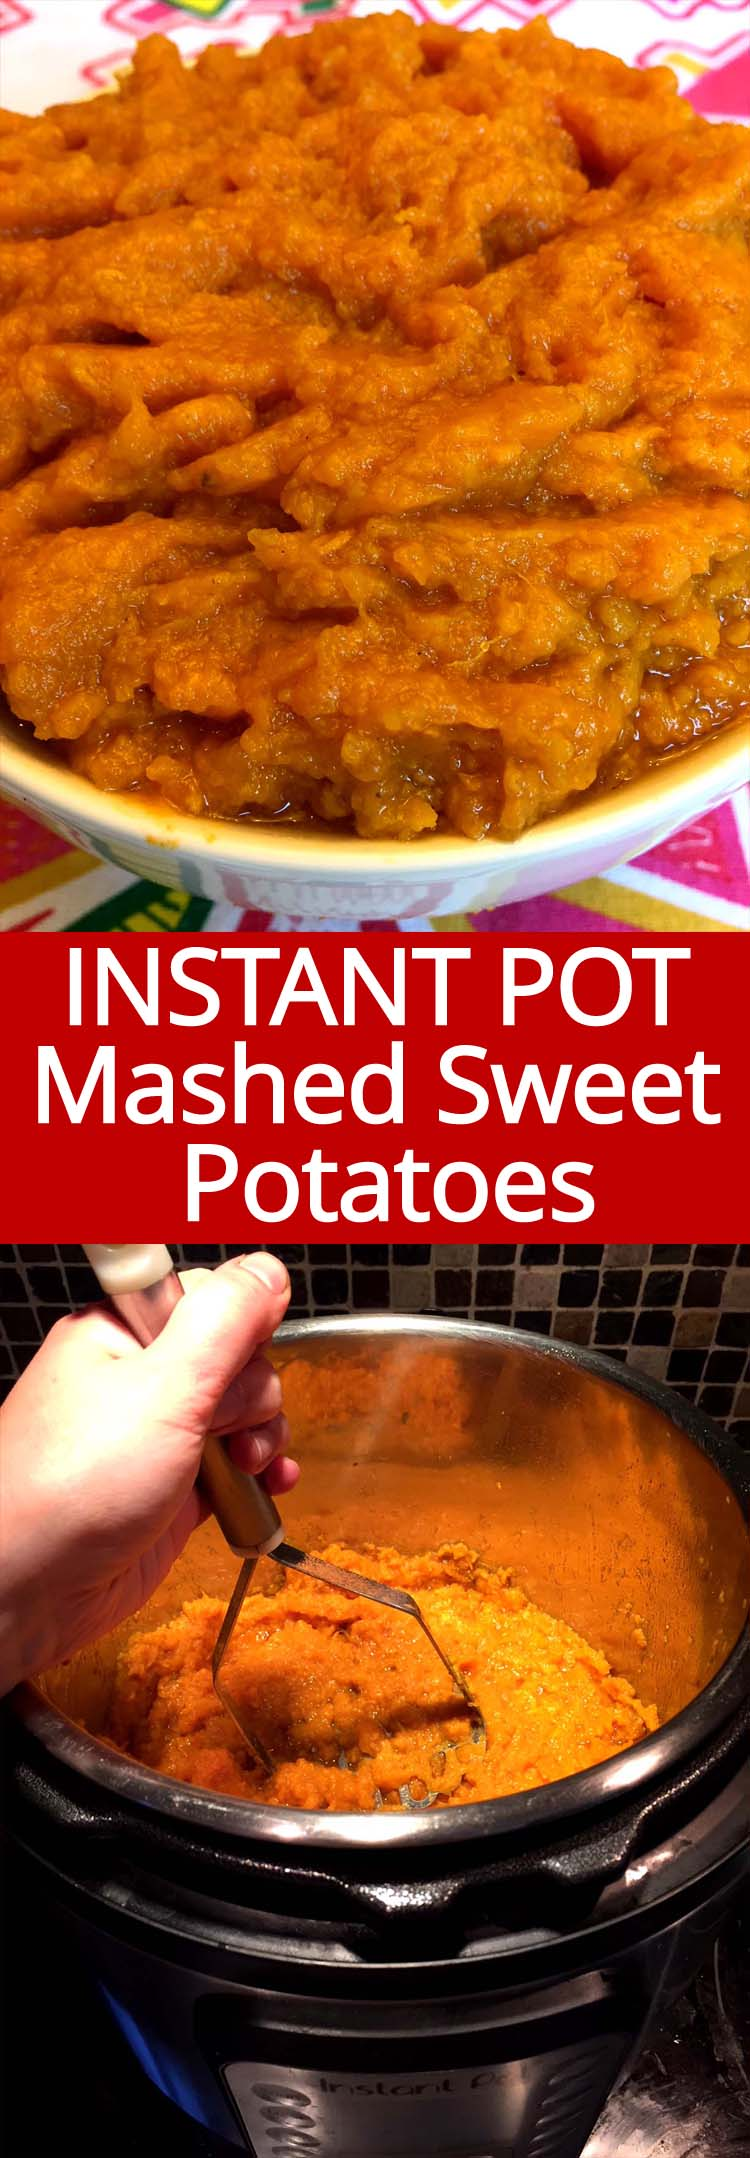 Instant Pot mashed sweet potatoes are so easy to make and taste amazing! Super smooth texture, yummmmmm!